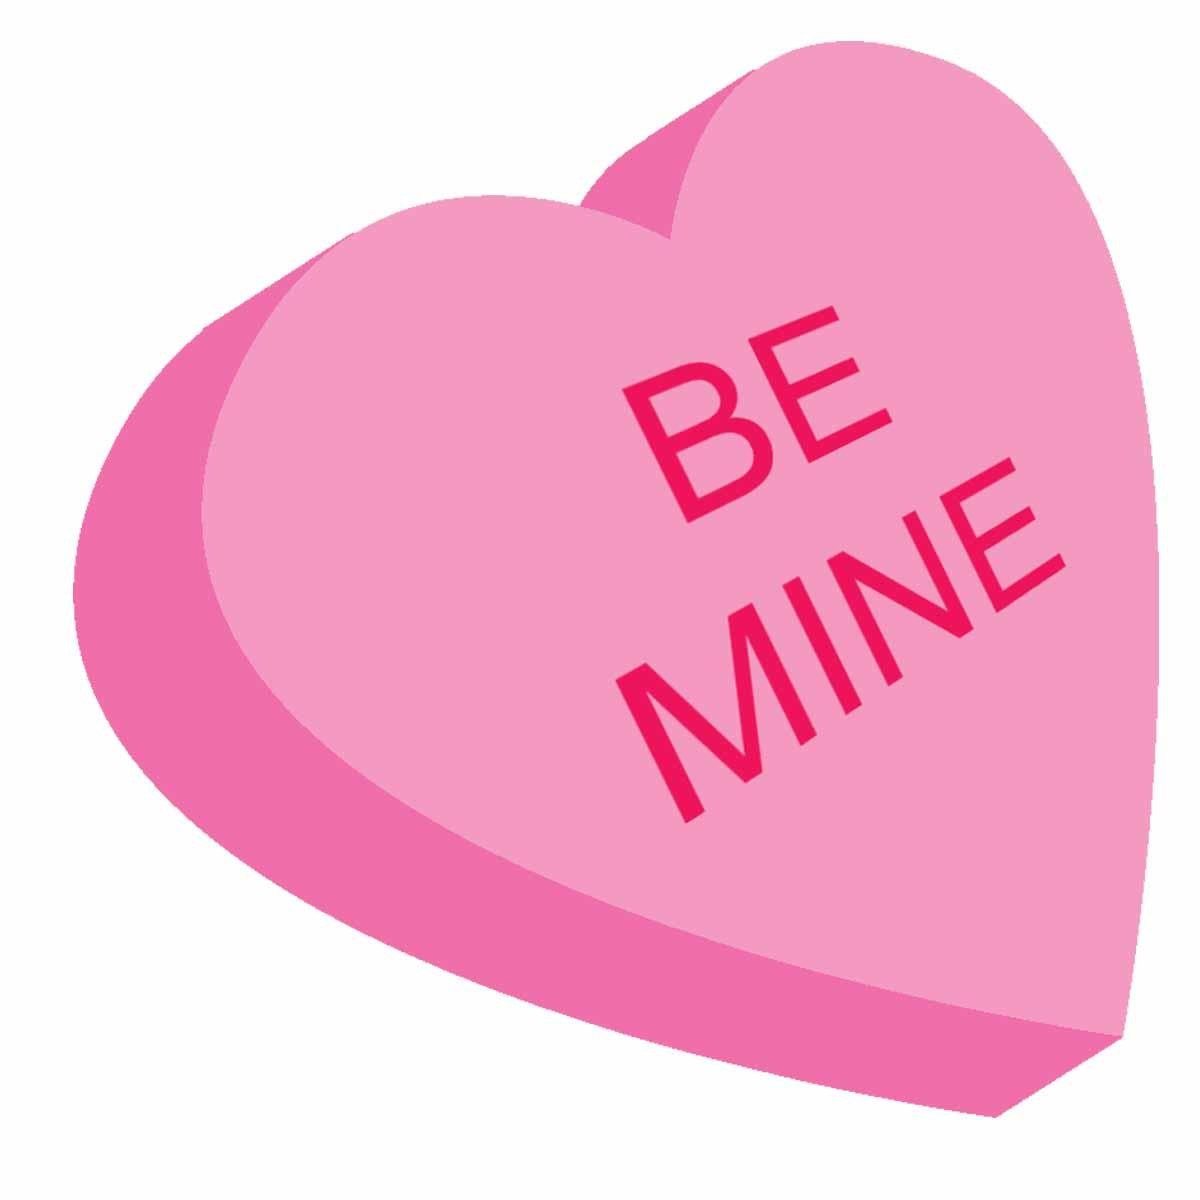 Romantic Valentine Candy Hearts Clipart Funny Pictures Shake The.